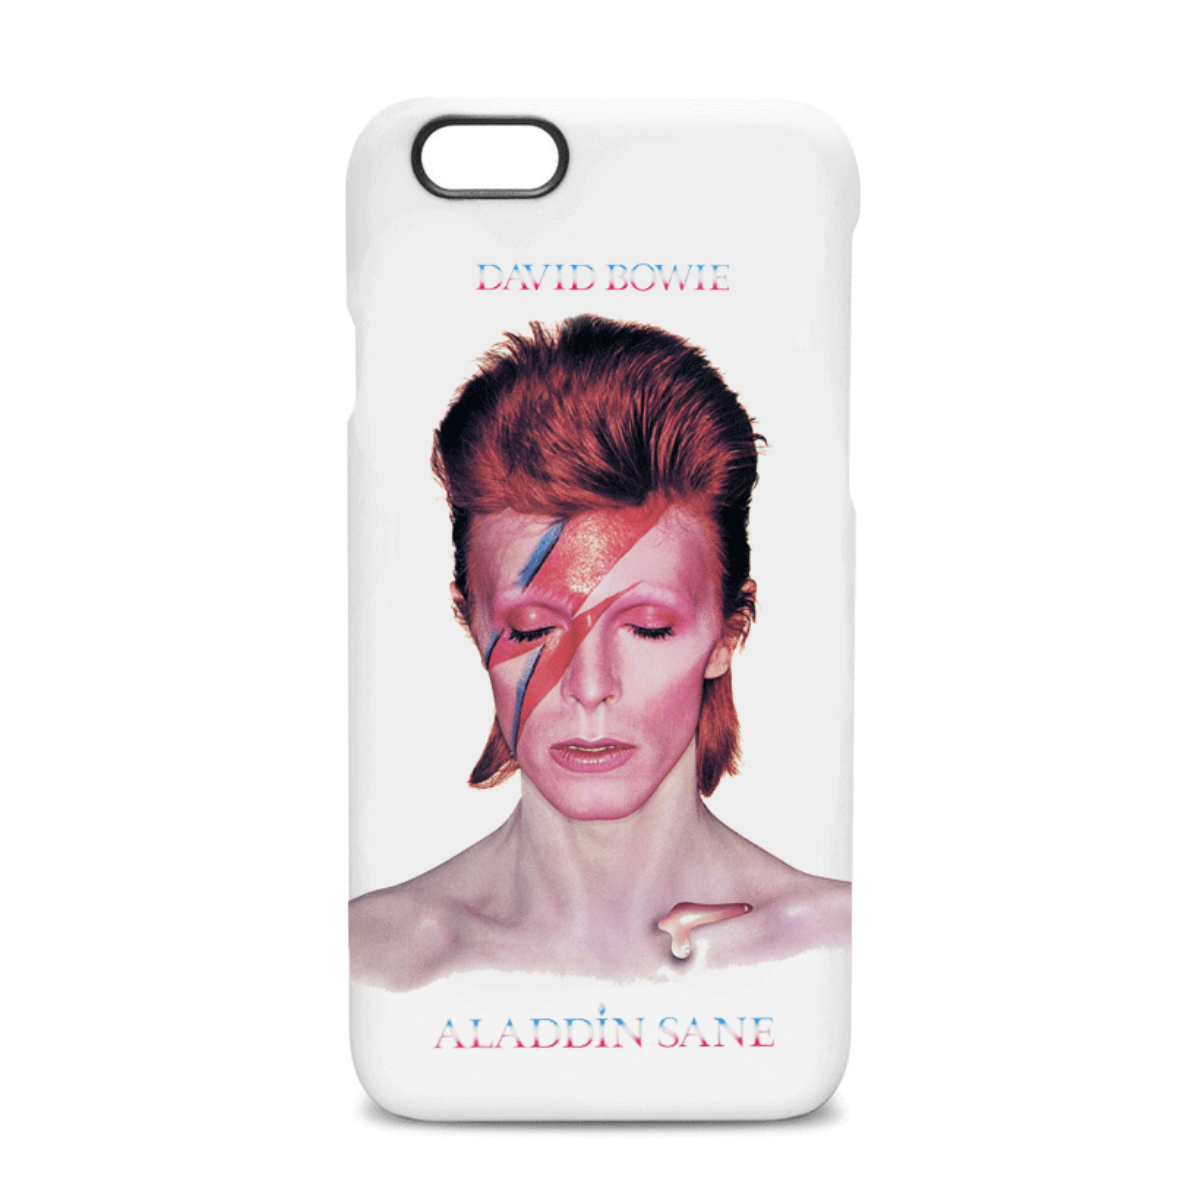 Aladdin Sane Phone Case